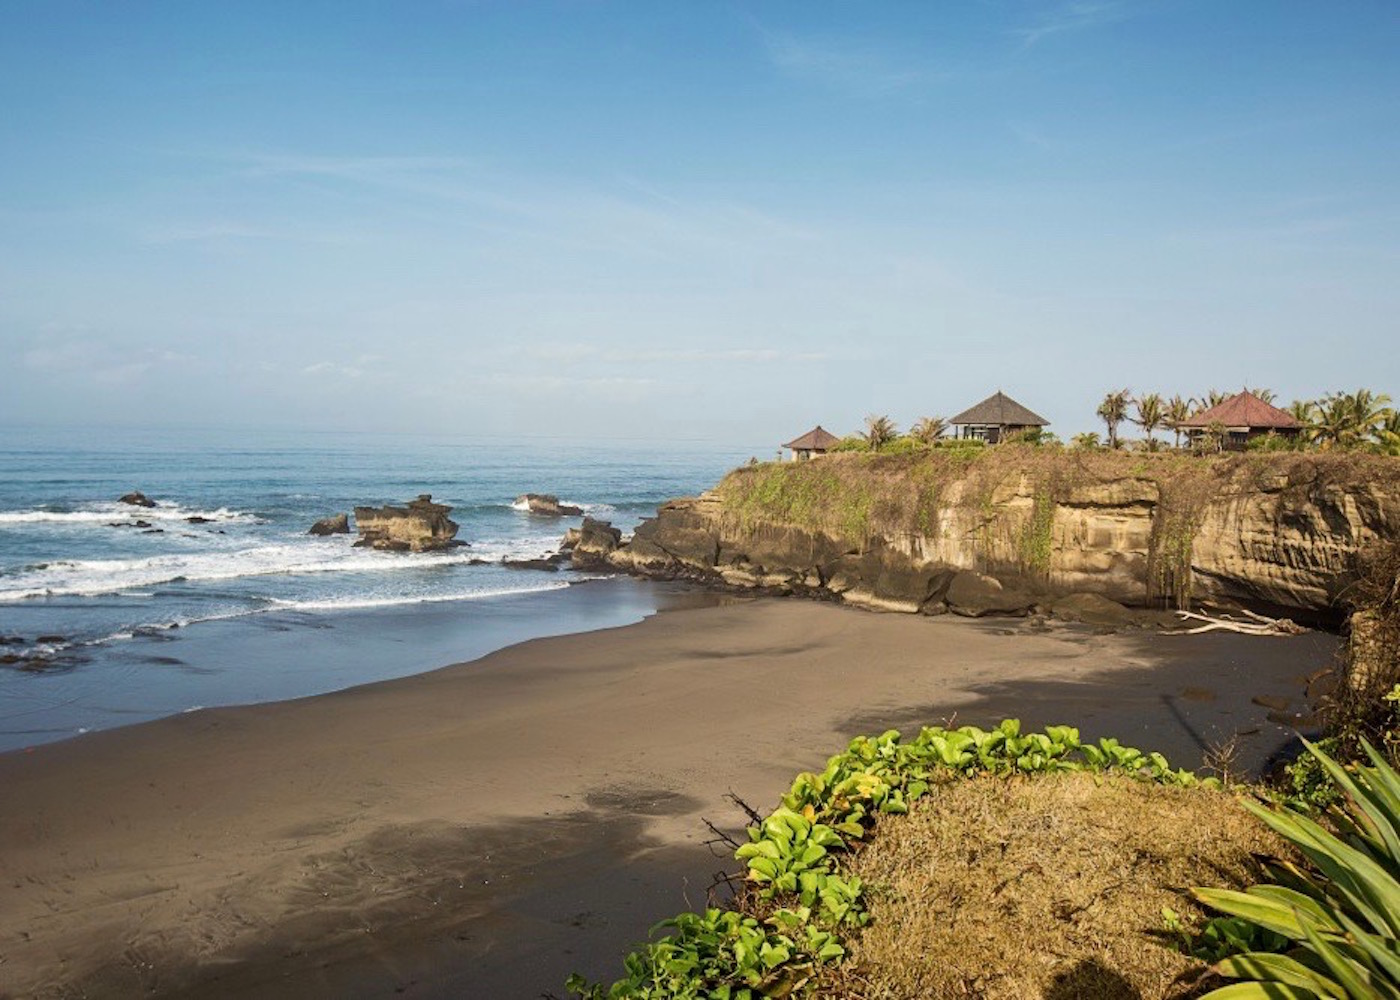 View of the black sands at Balian Beach in Bali, Indonesia